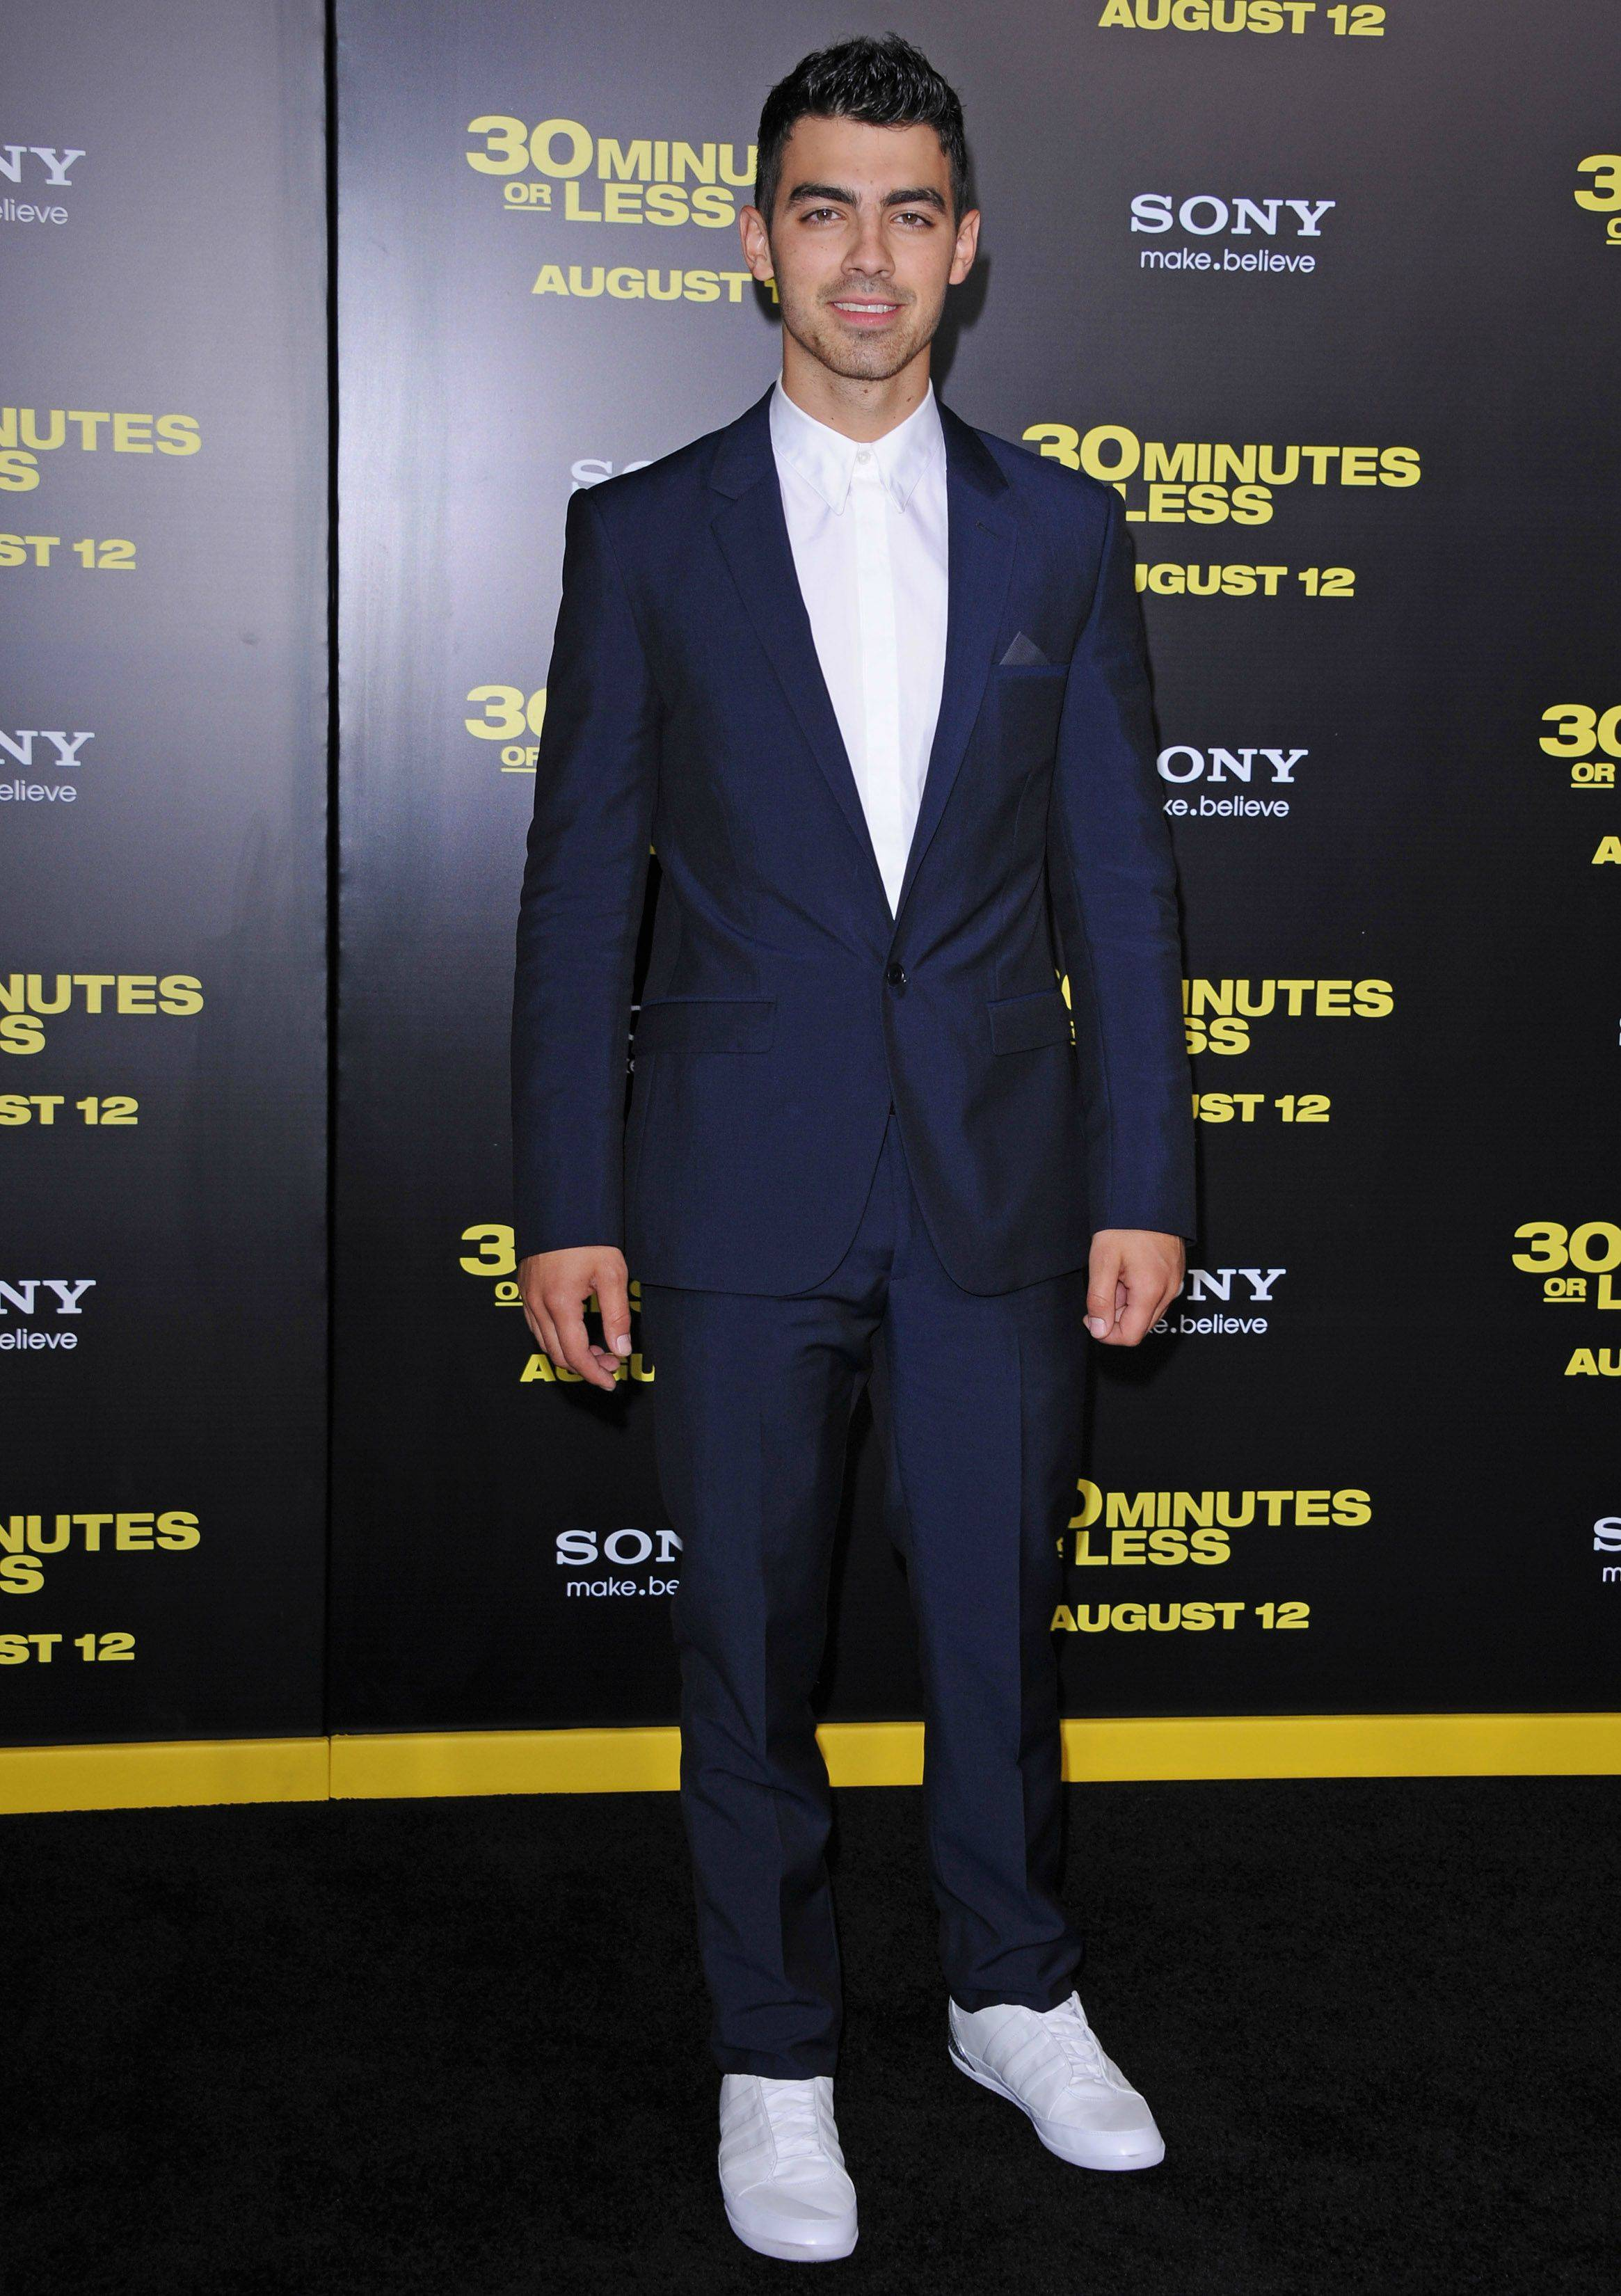 joe attends '30 minutes or less' premiere (photos)